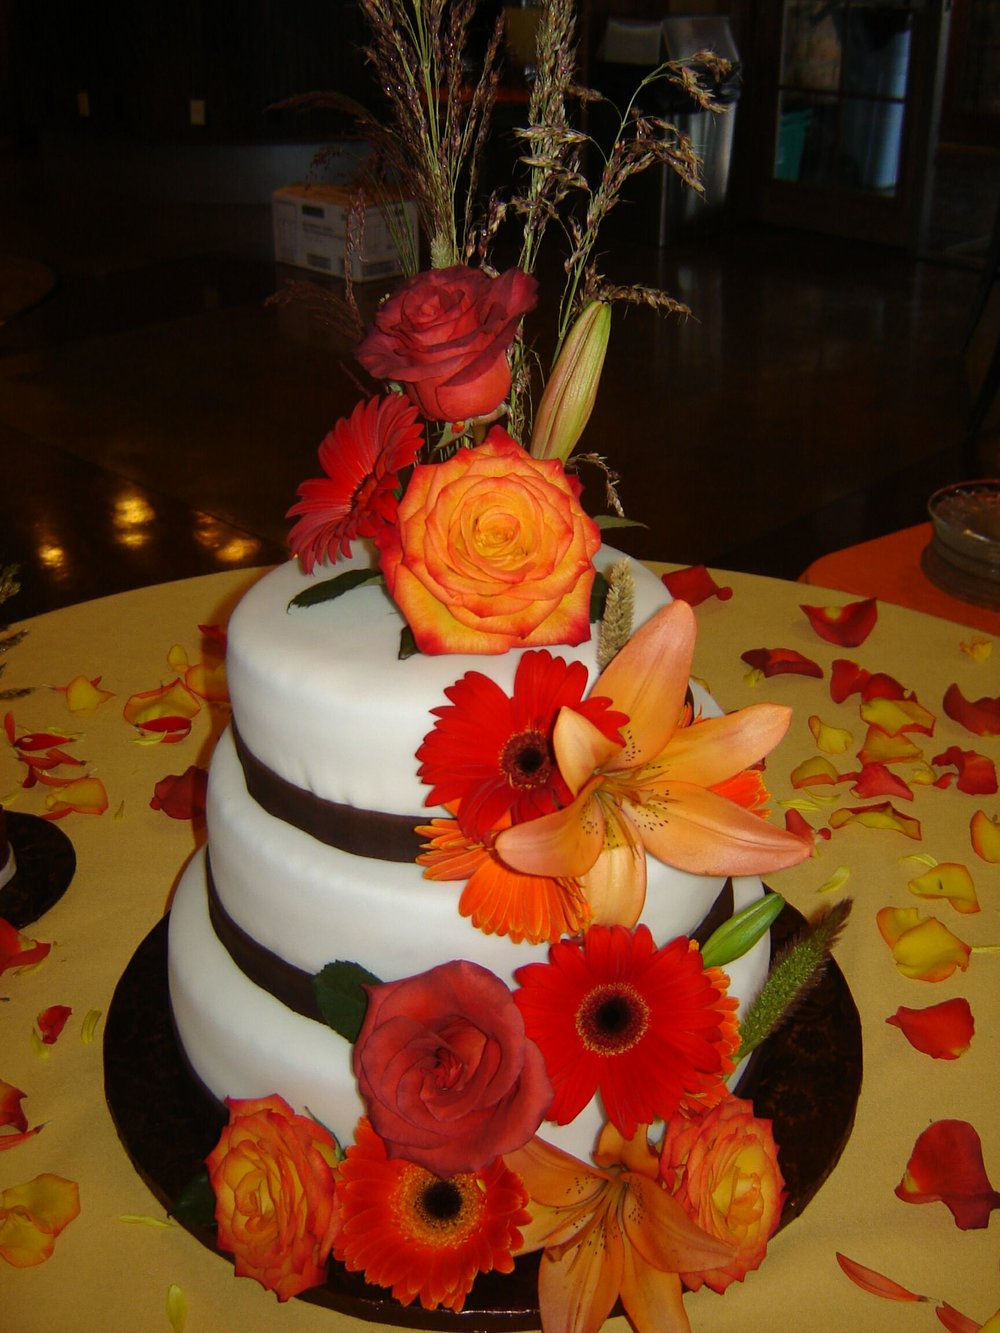 Waldorf Astoria cake decorated with fondant and fresh flowers.